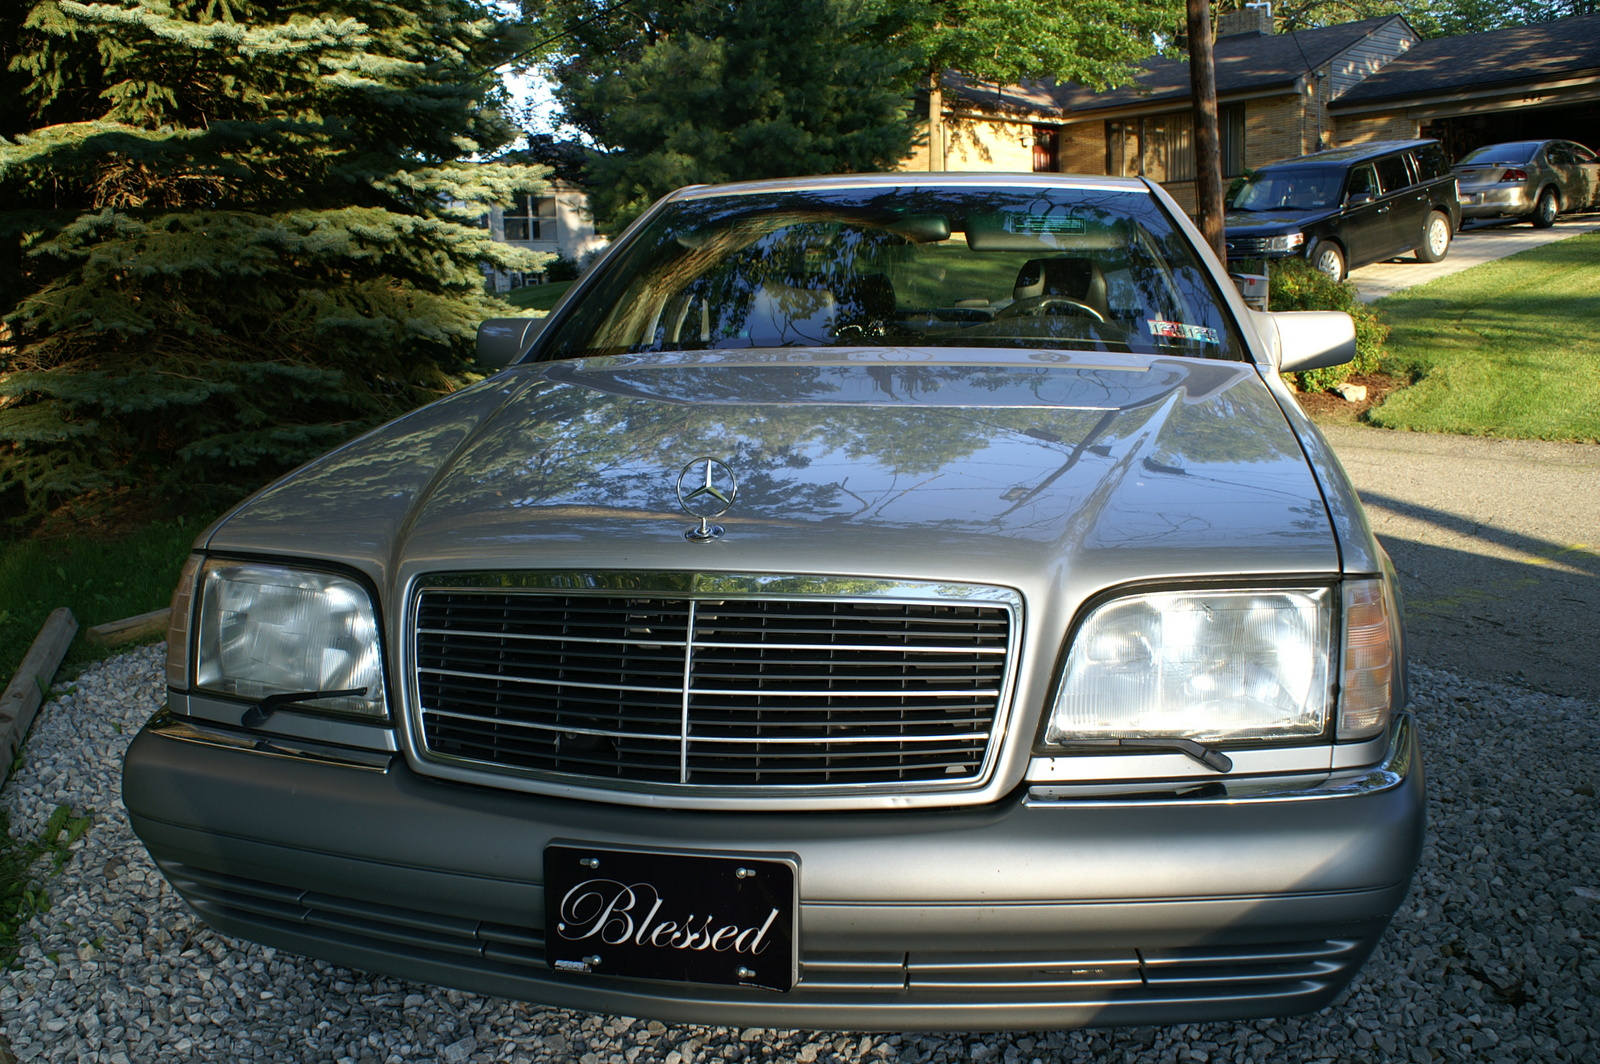 Picture of 1995 mercedes benz s class 4 dr s500 sedan for Mercedes benz 1995